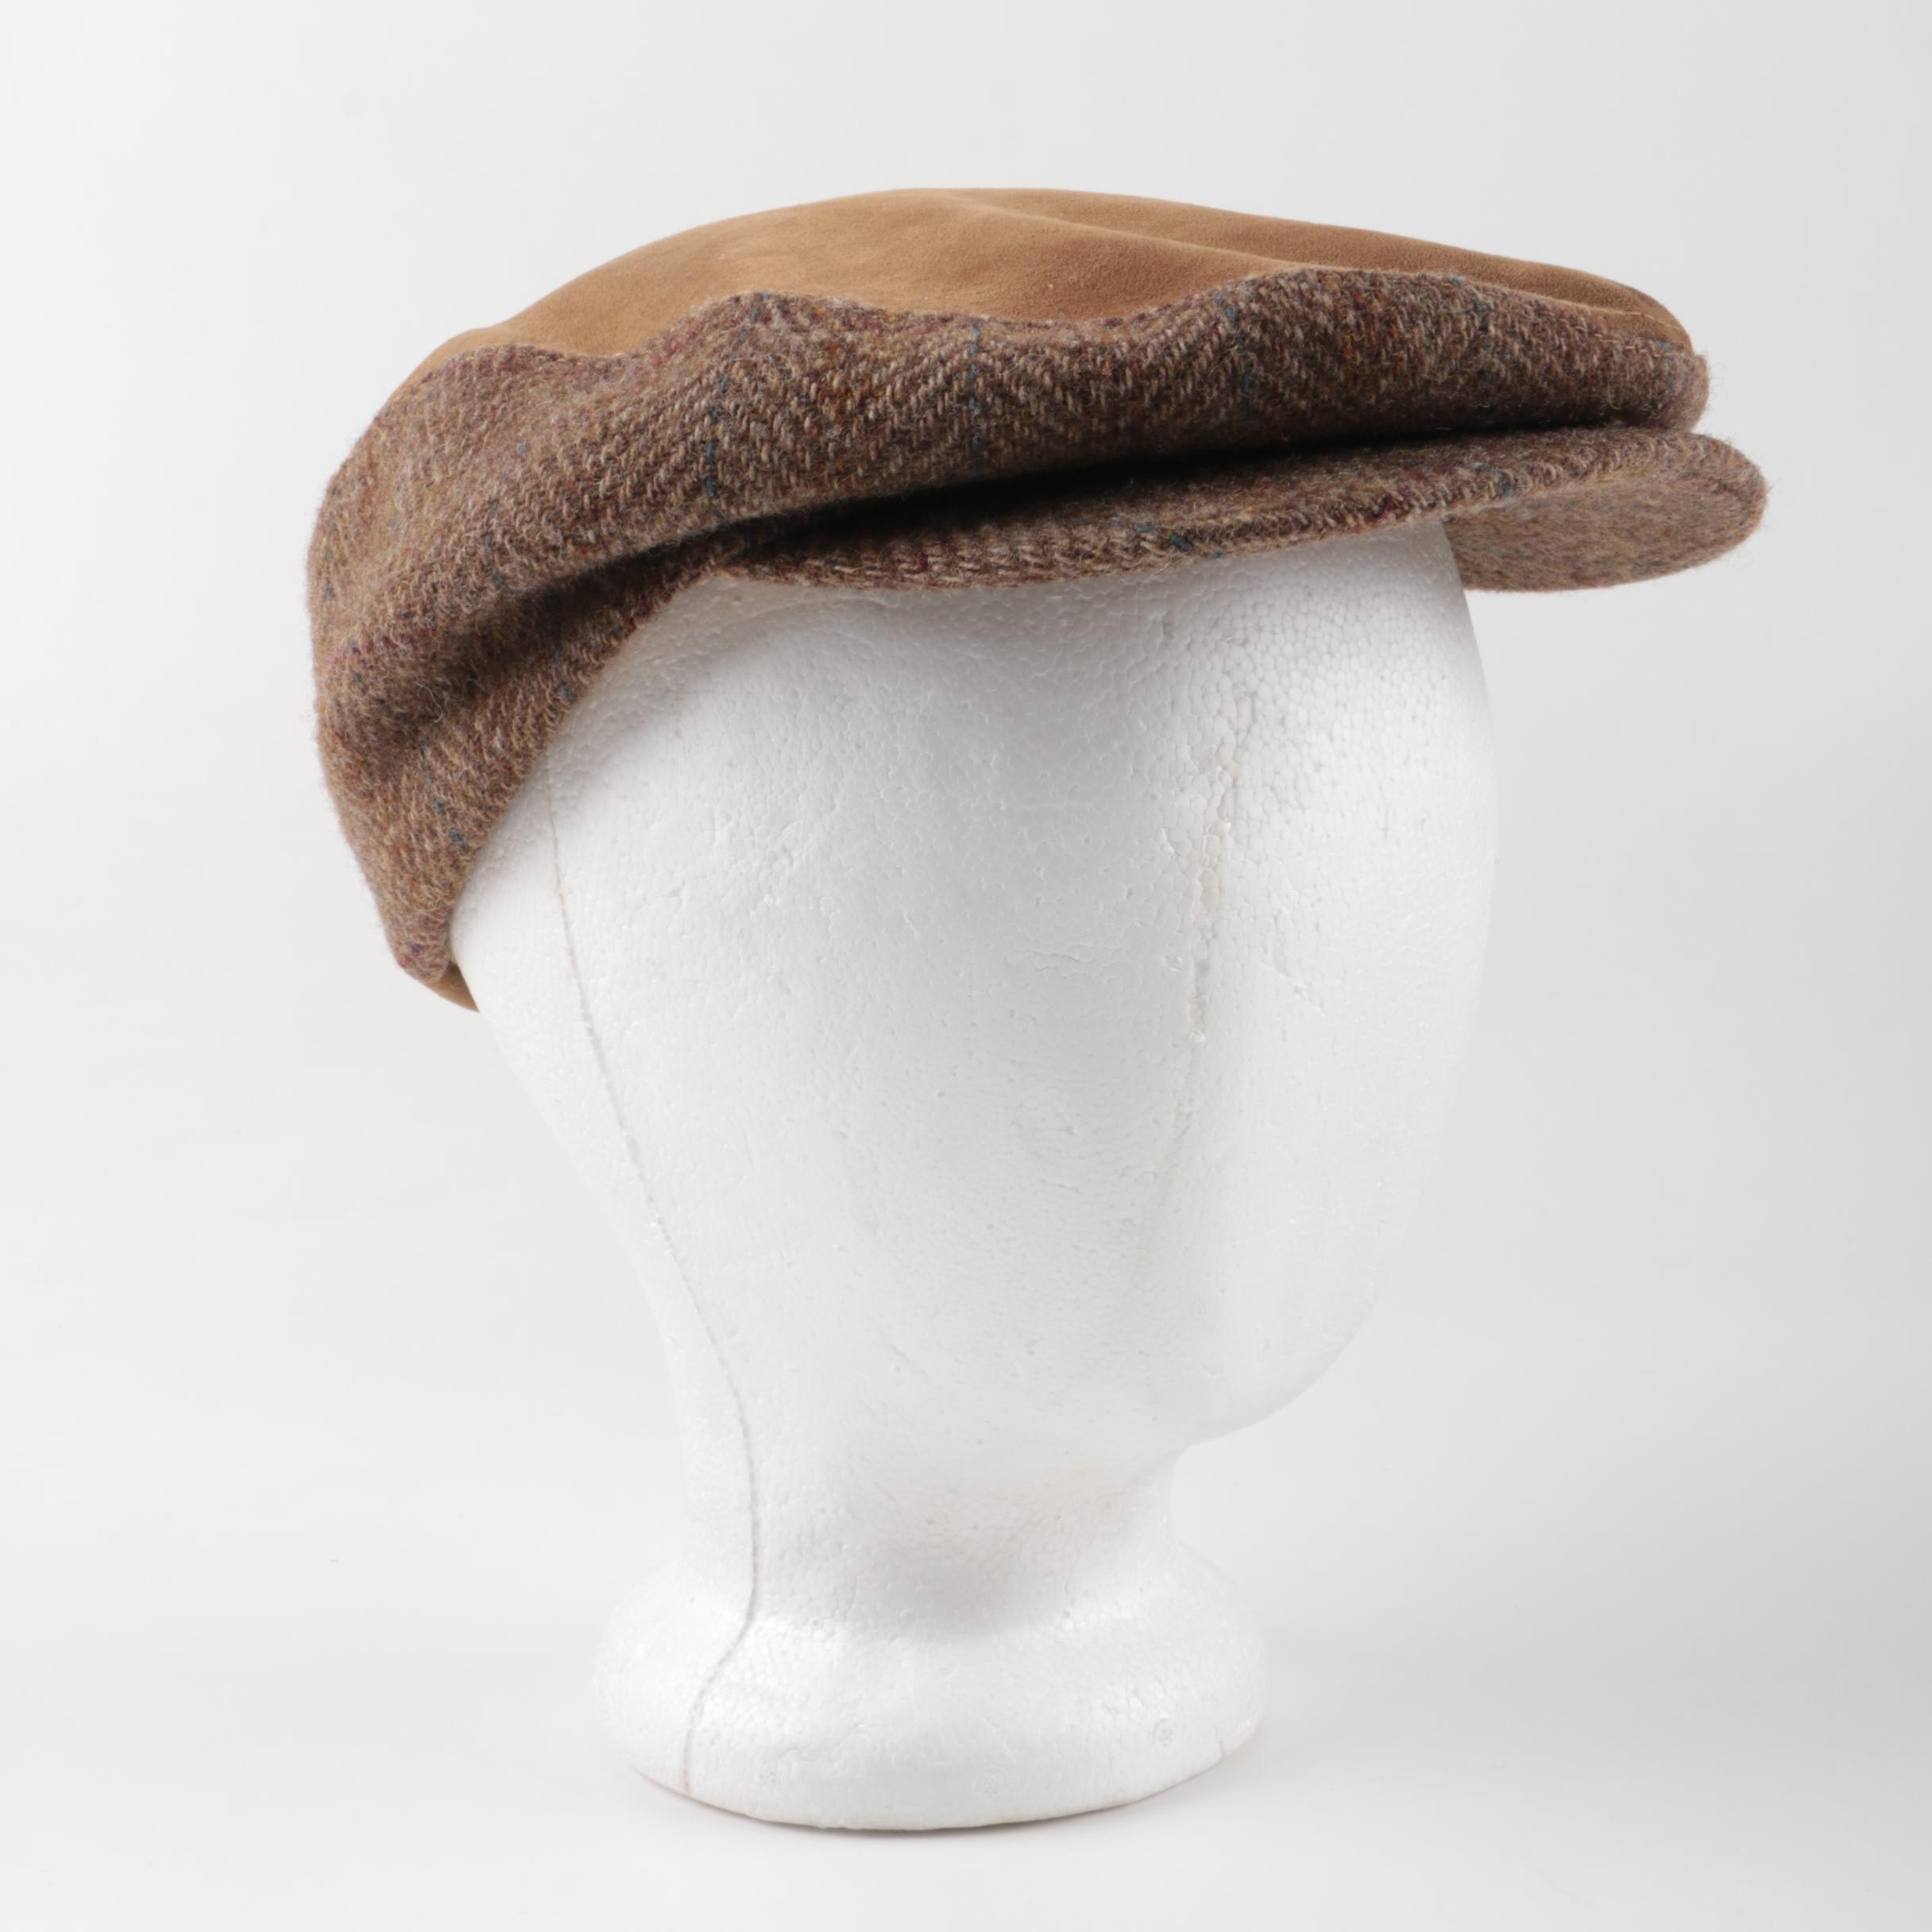 Vintage Stetson Tweed and Leather Flat Cap